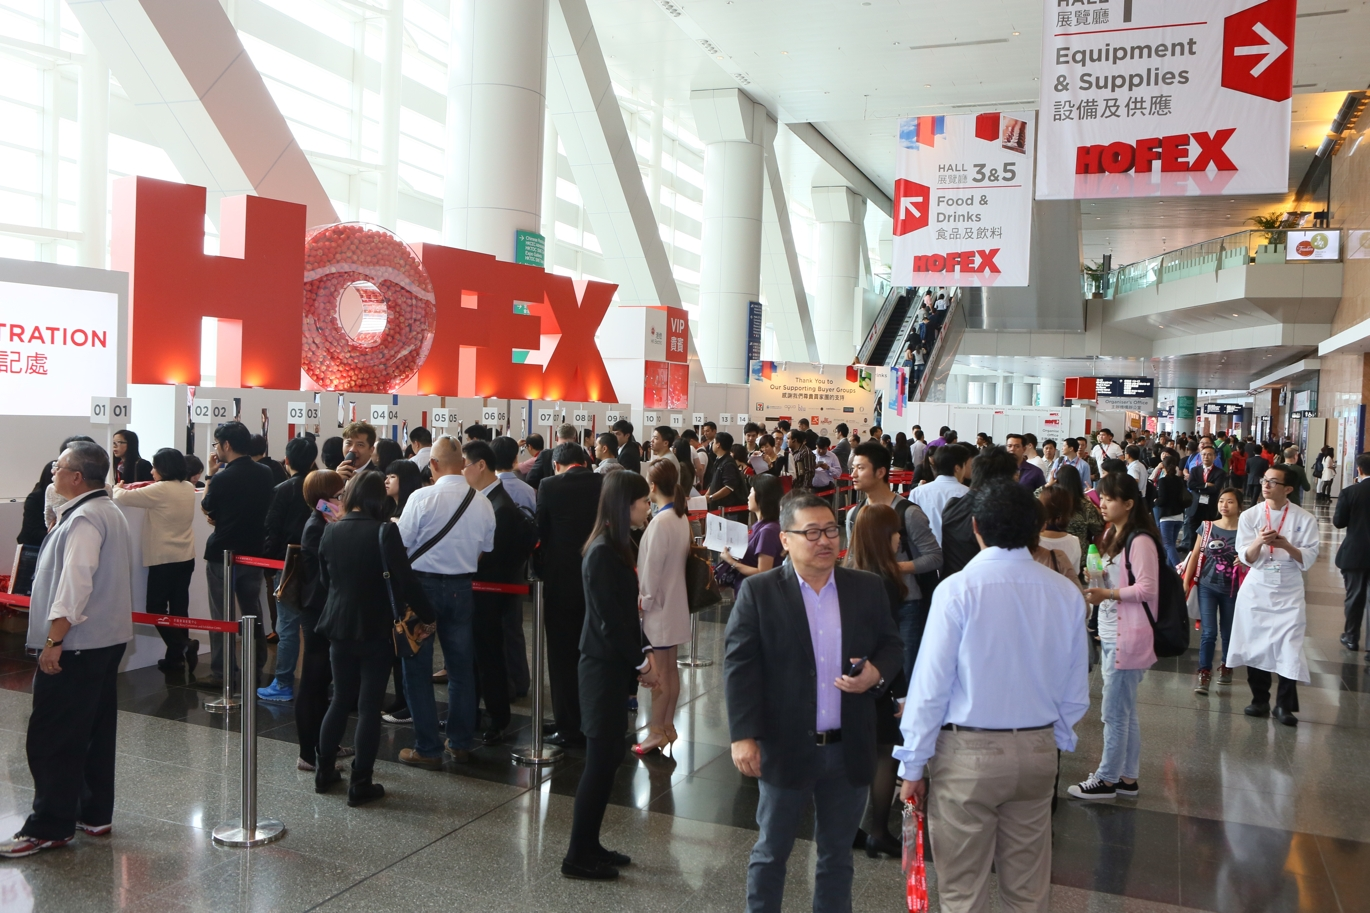 HOFEX 2015 will take place in the award-winning, multipurpose-built Hong Kong Convention and Exhibition Centre which is one of the largest in Asia. Located in the heart of Wanchai on the Hong Kong Island, the centre is one of the world's most impressive, efficient and functional exhibition venues for exhibitors and buyers alike